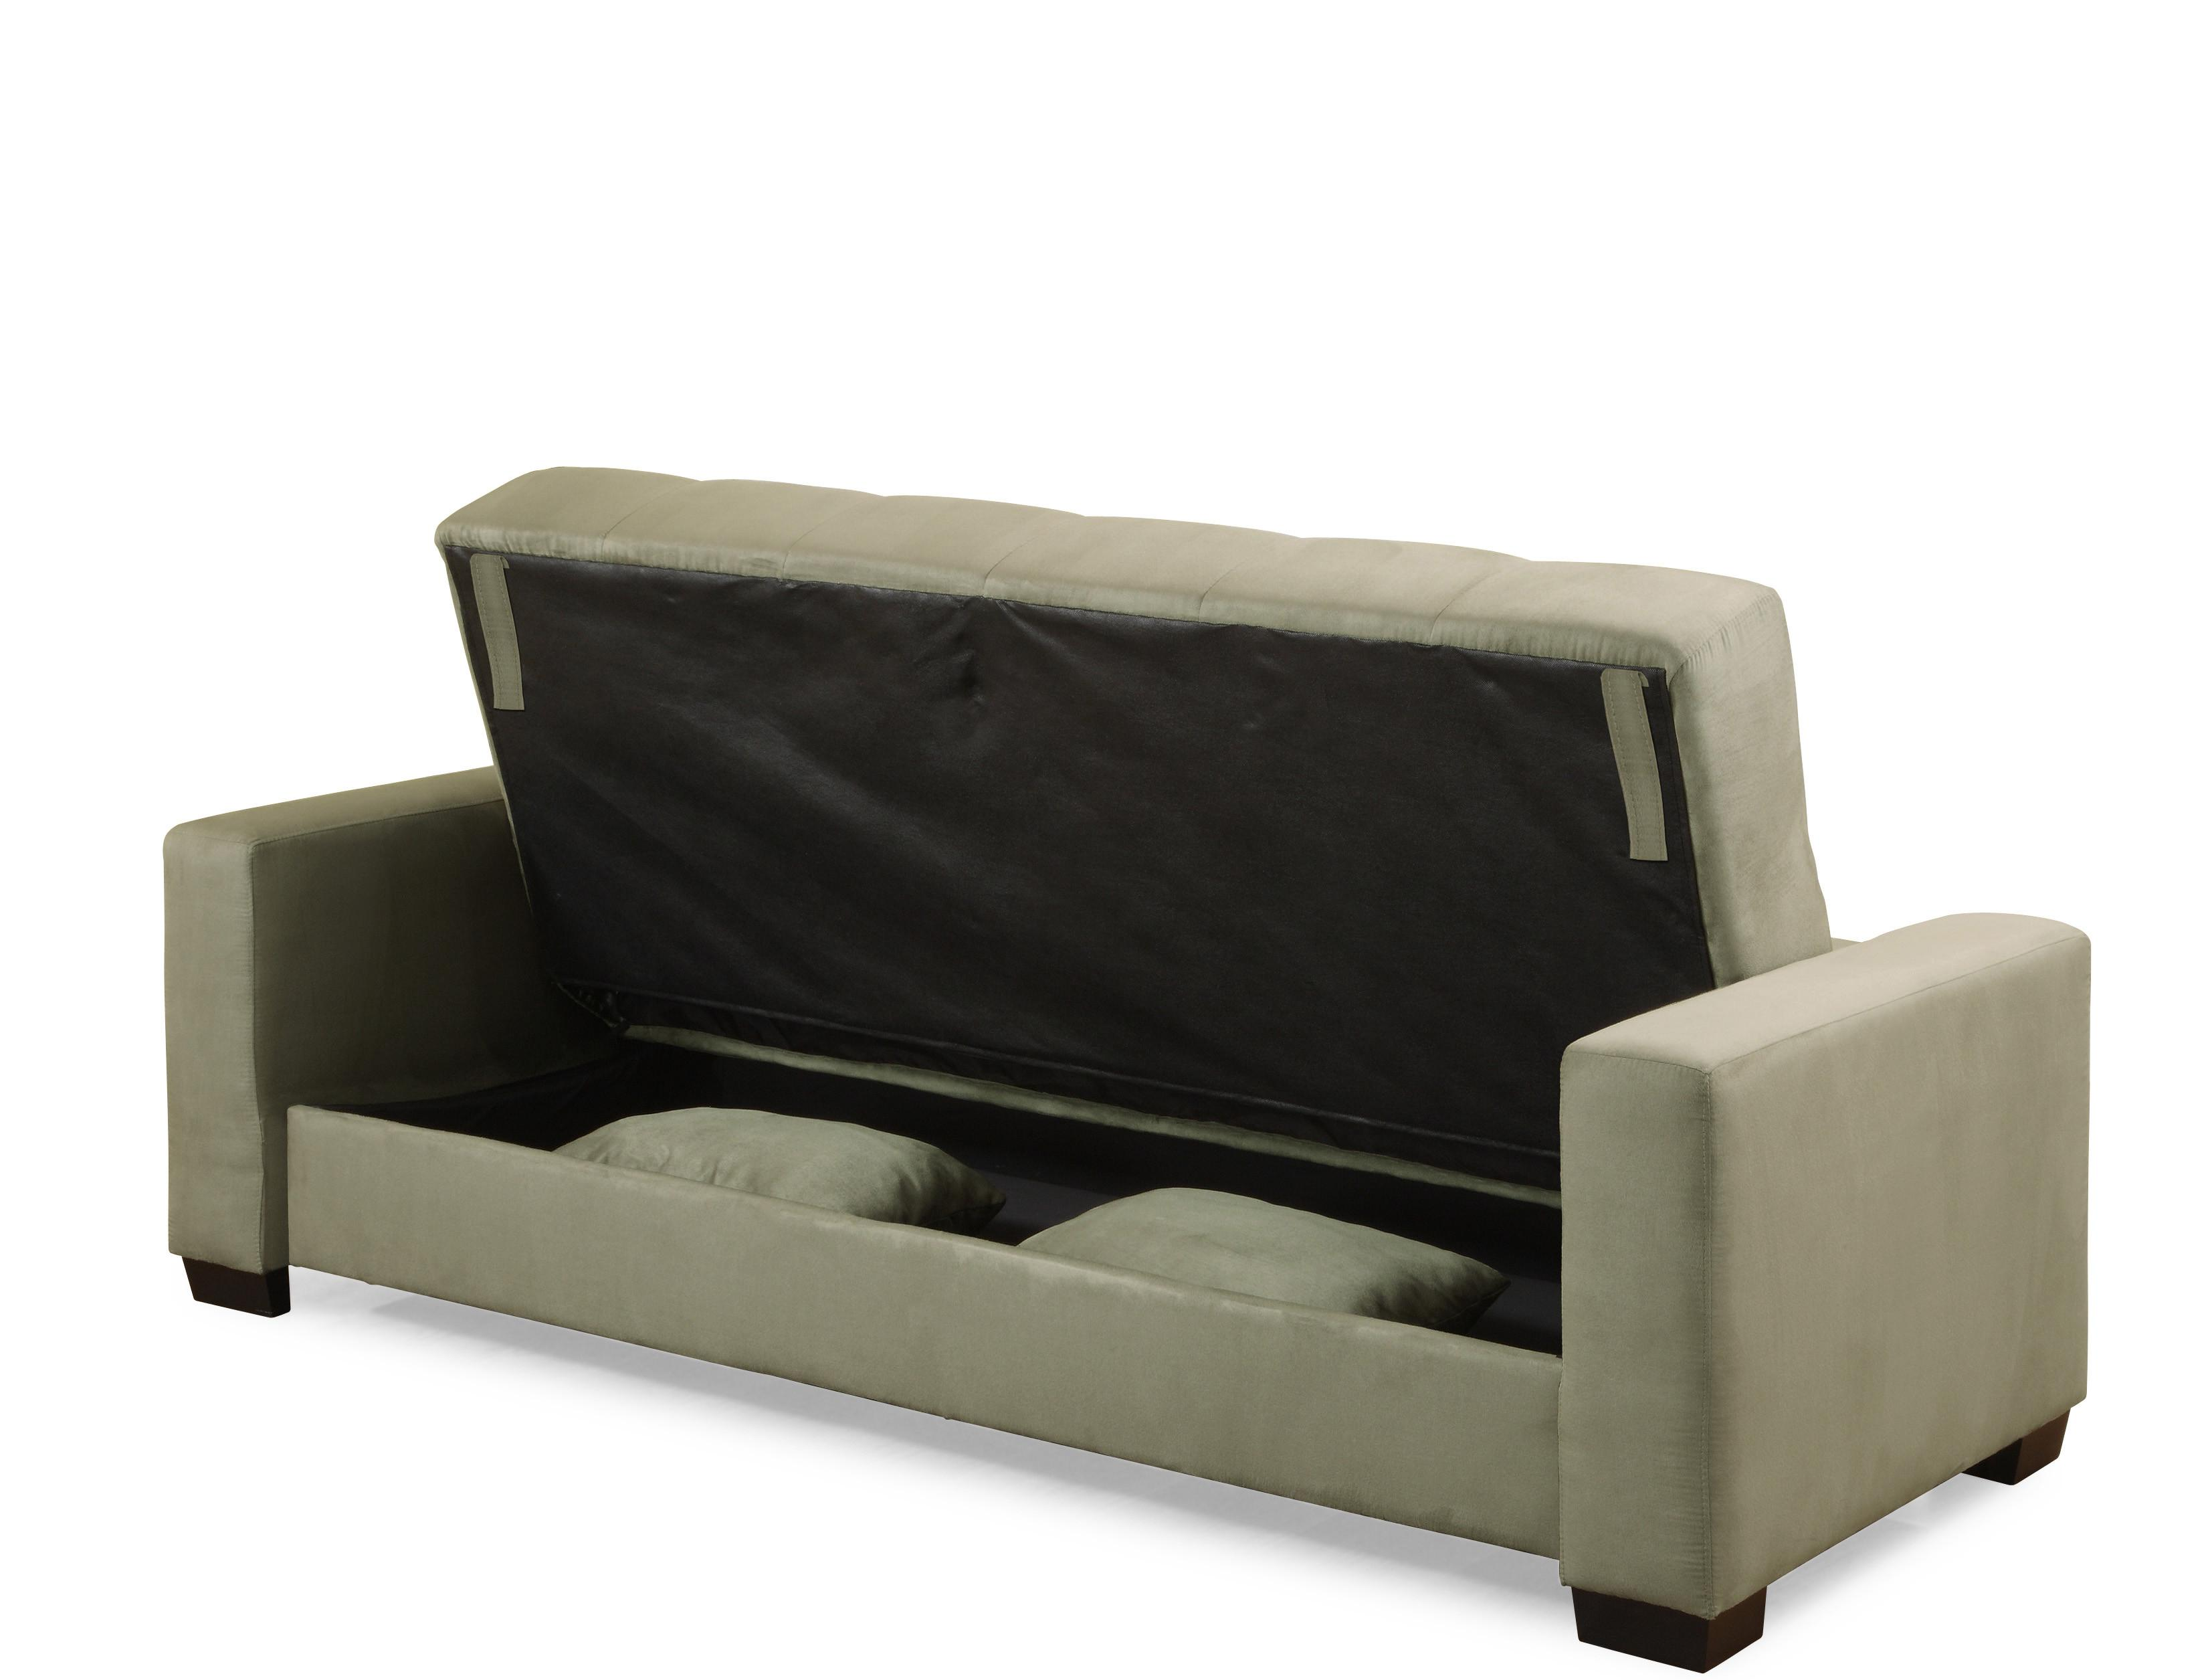 Models Convertible Sofa Bed Which Should Purchase